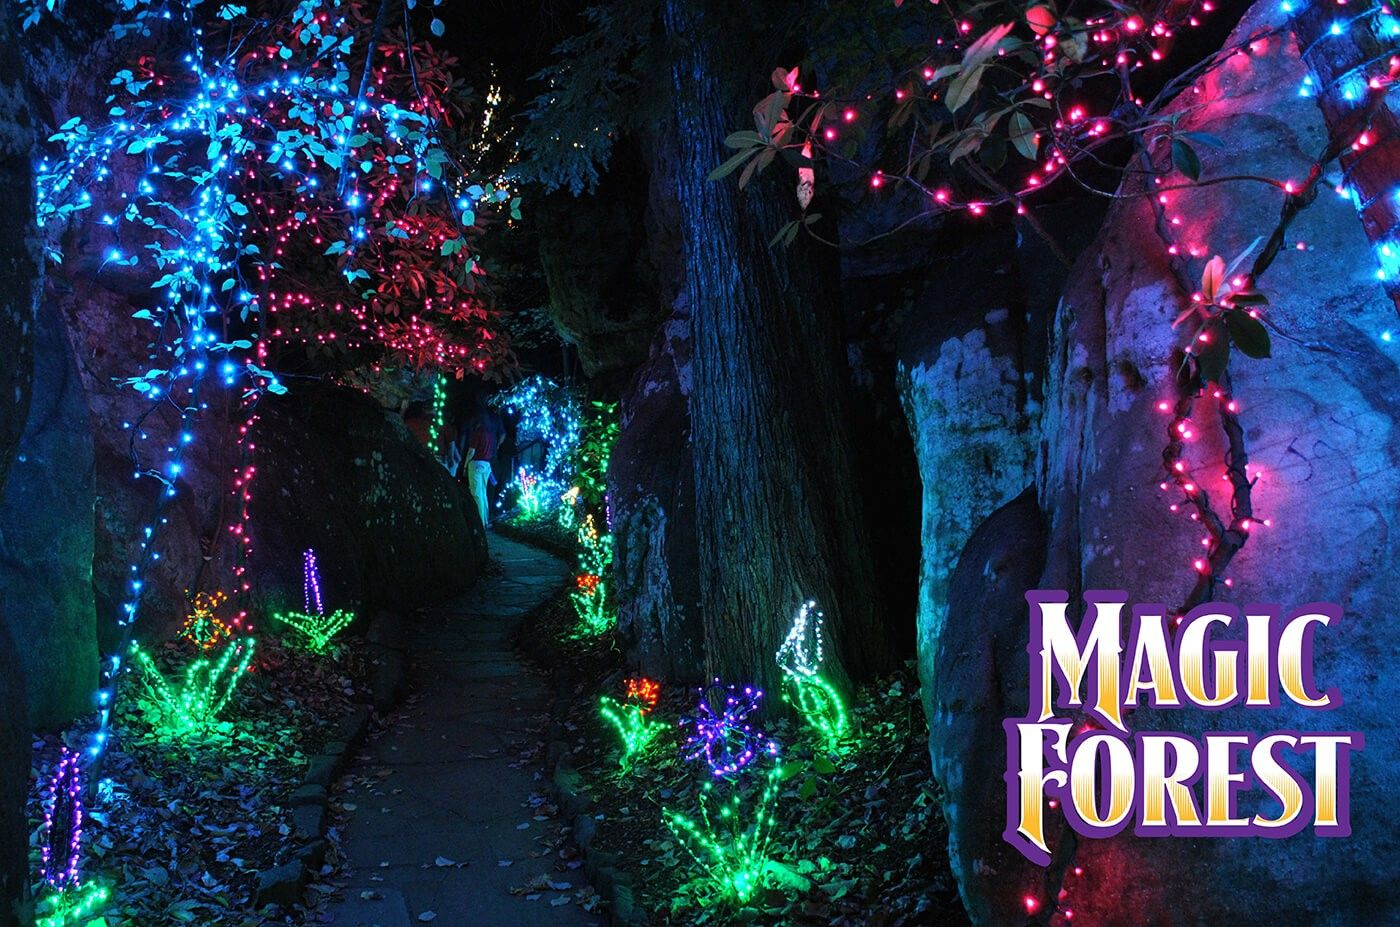 Rock City Enchanted Garden Of Light Pathway Magic Forest Garden Of Lights Enchanted Forest Christmas Light Show